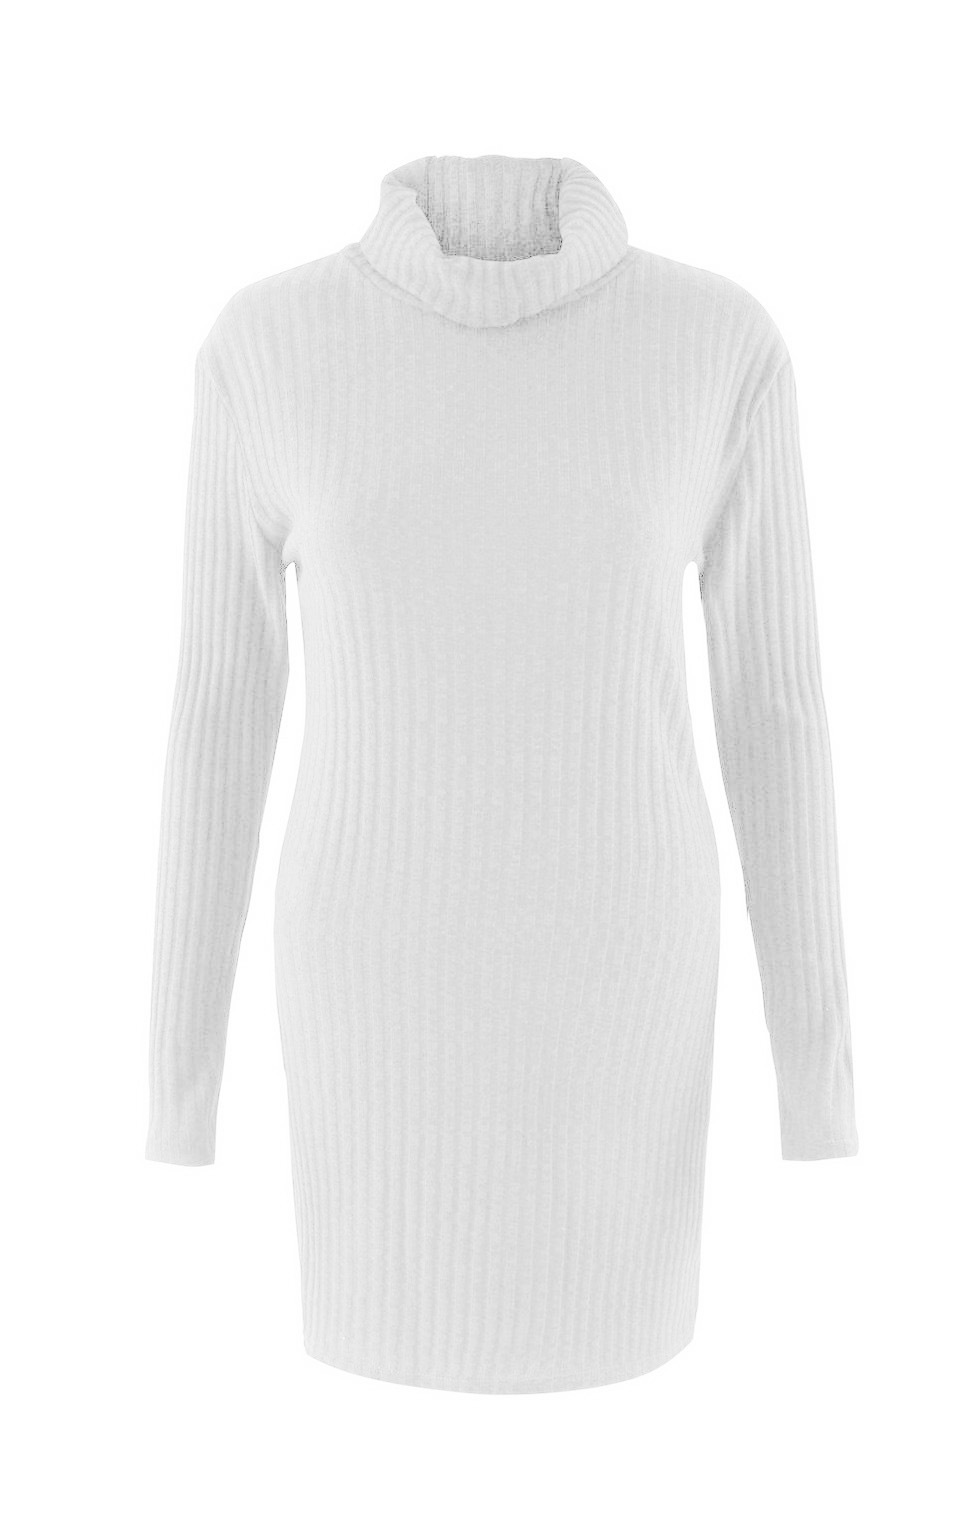 Turtleneck Long knitted pullover sweater, Women's Jumper, Casual Sweater 41